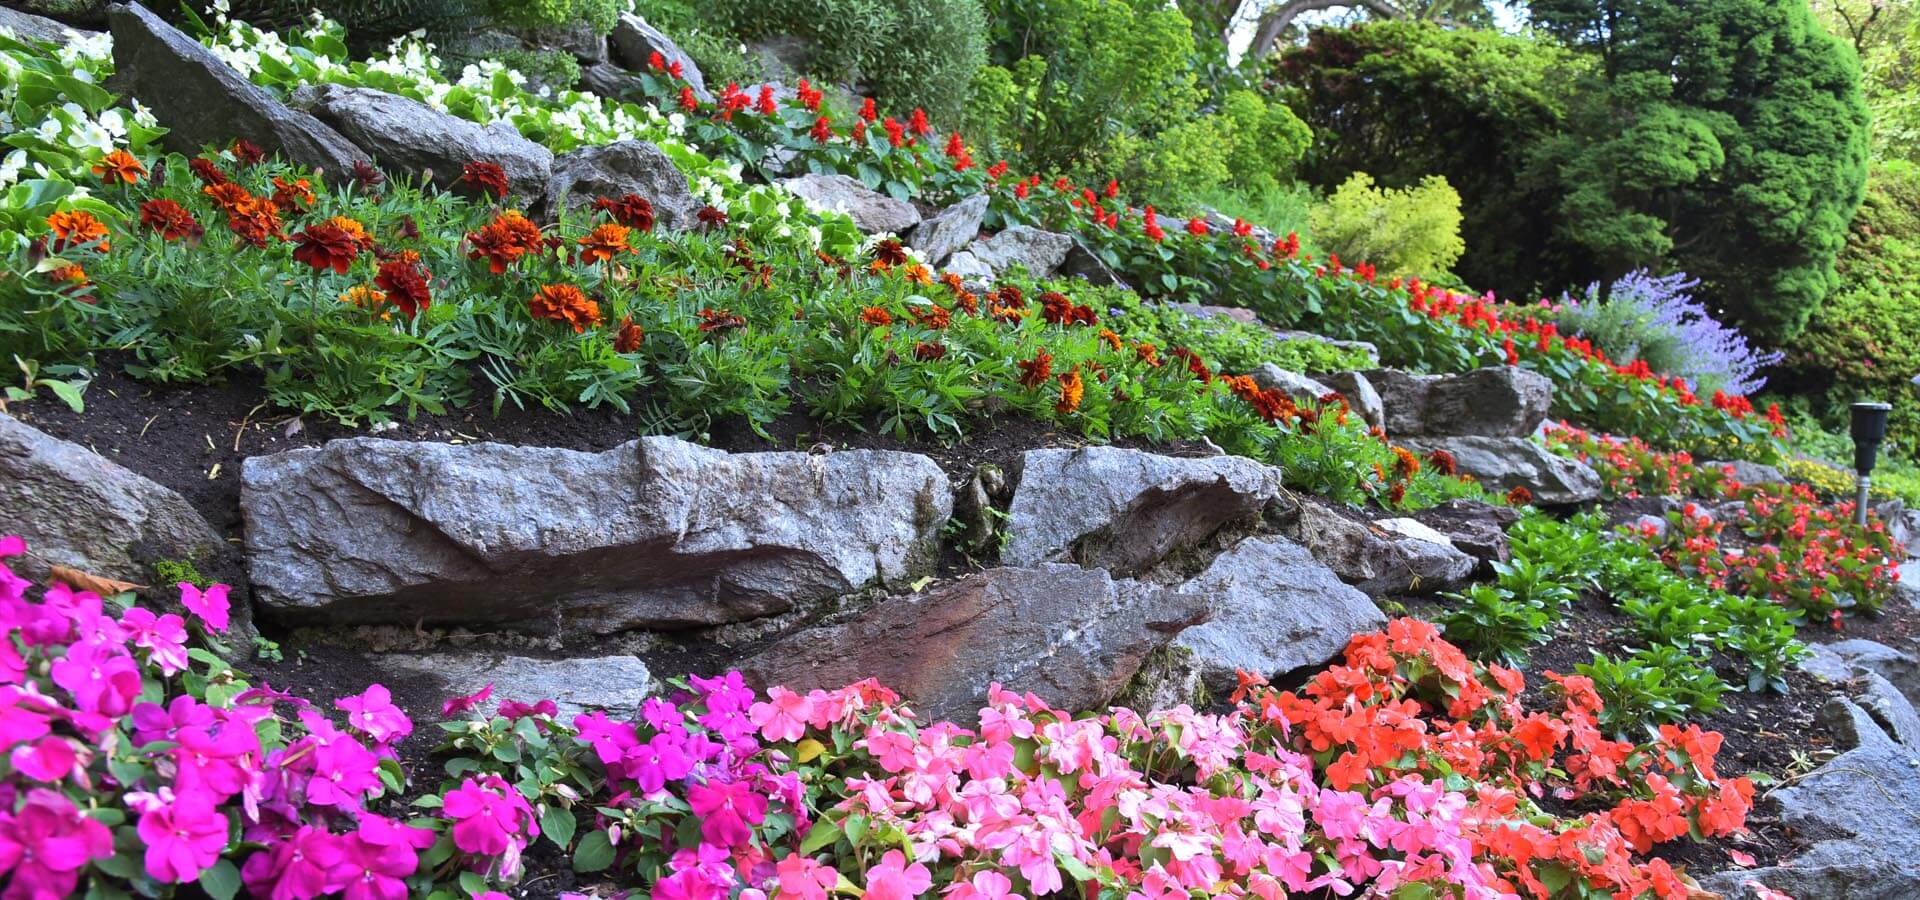 What plants are best for a rockery? Our guide